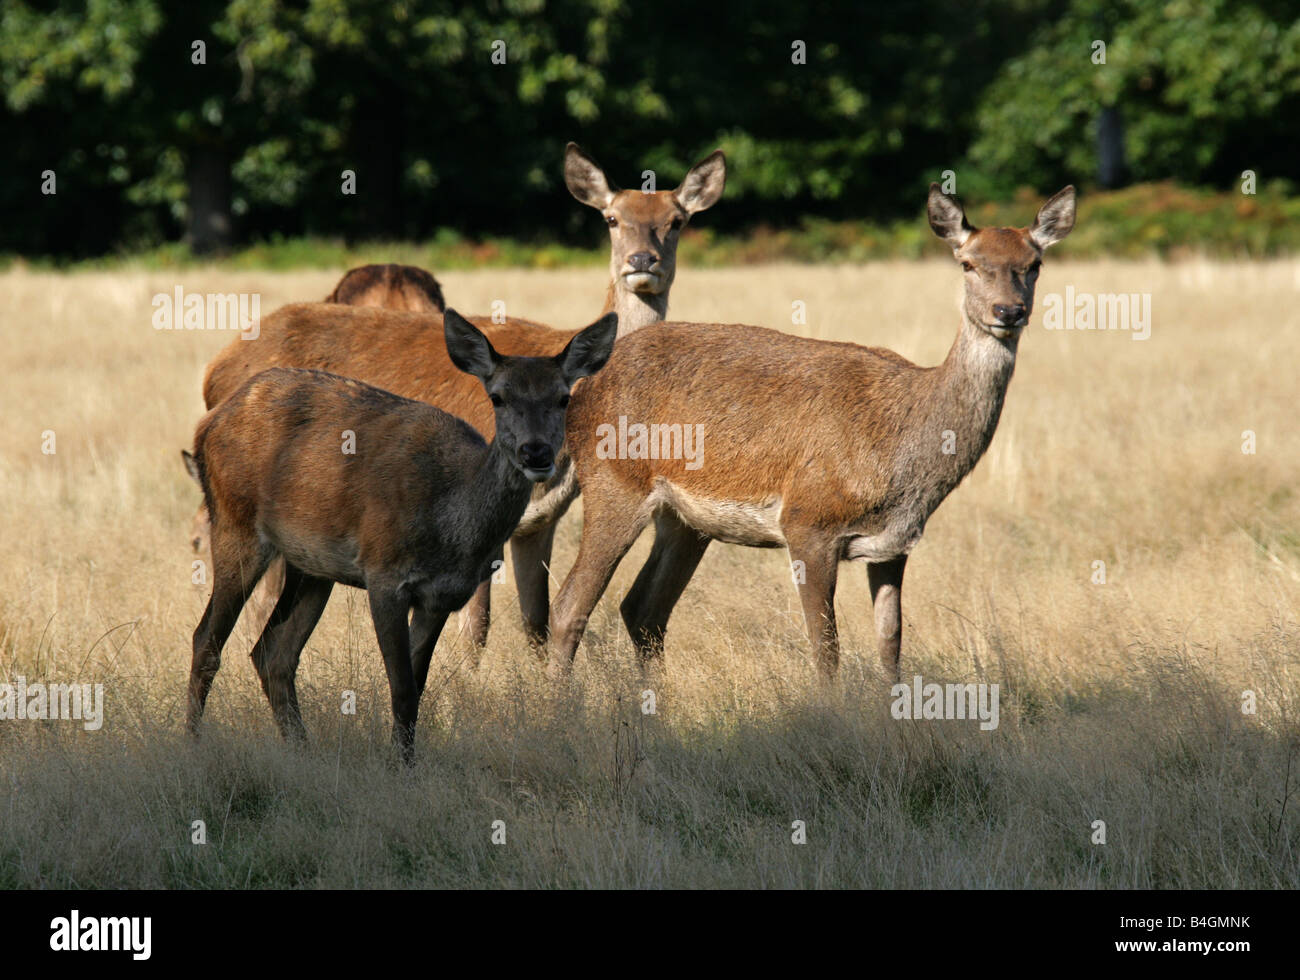 A Group of Three Female Red Deer, Cervus elaphus - Stock Image